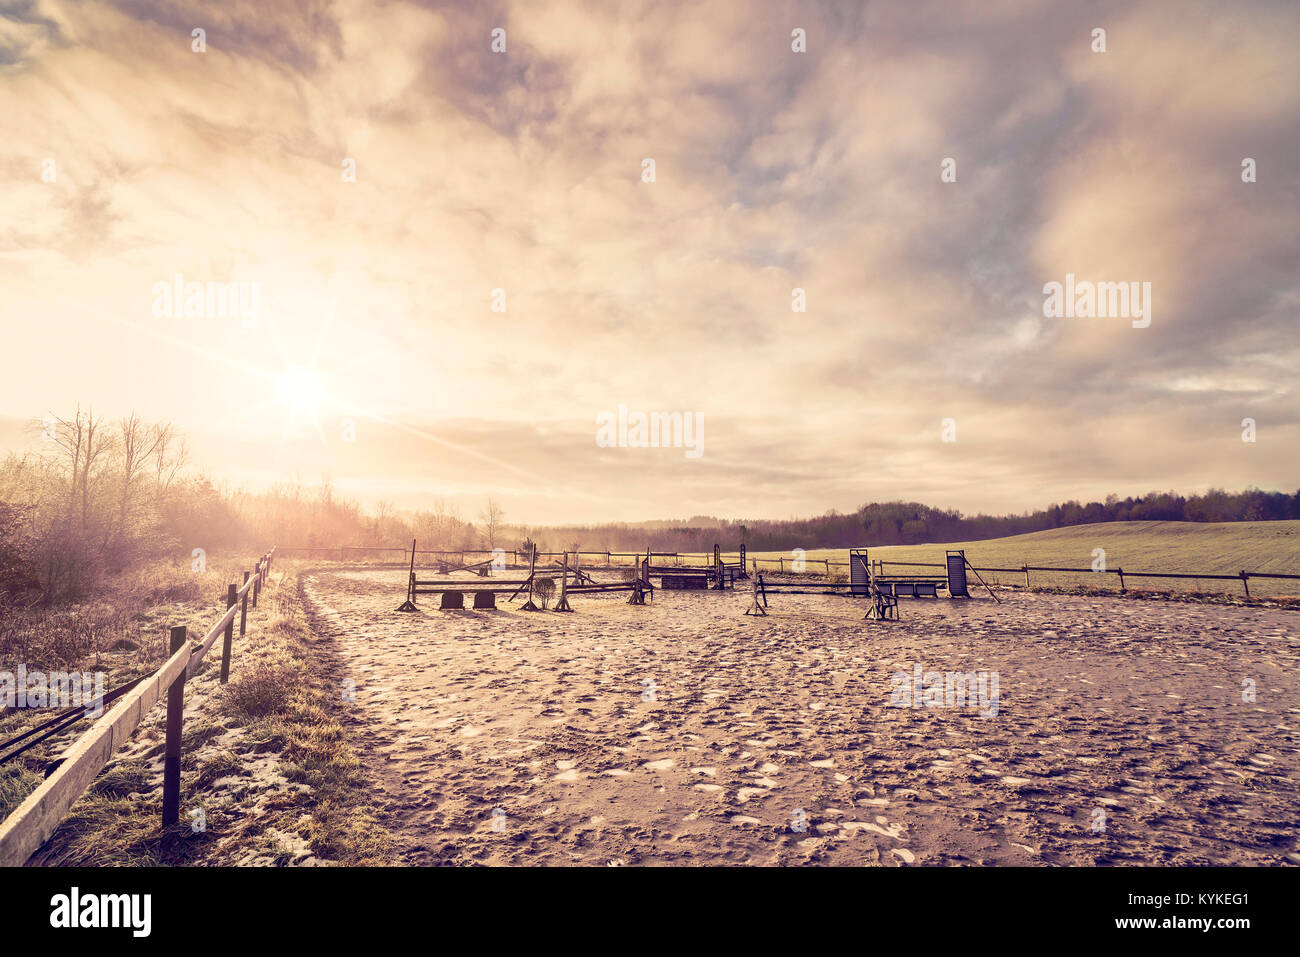 Horse equestrian course in the morning sunrise with frost on the muddy ground - Stock Image